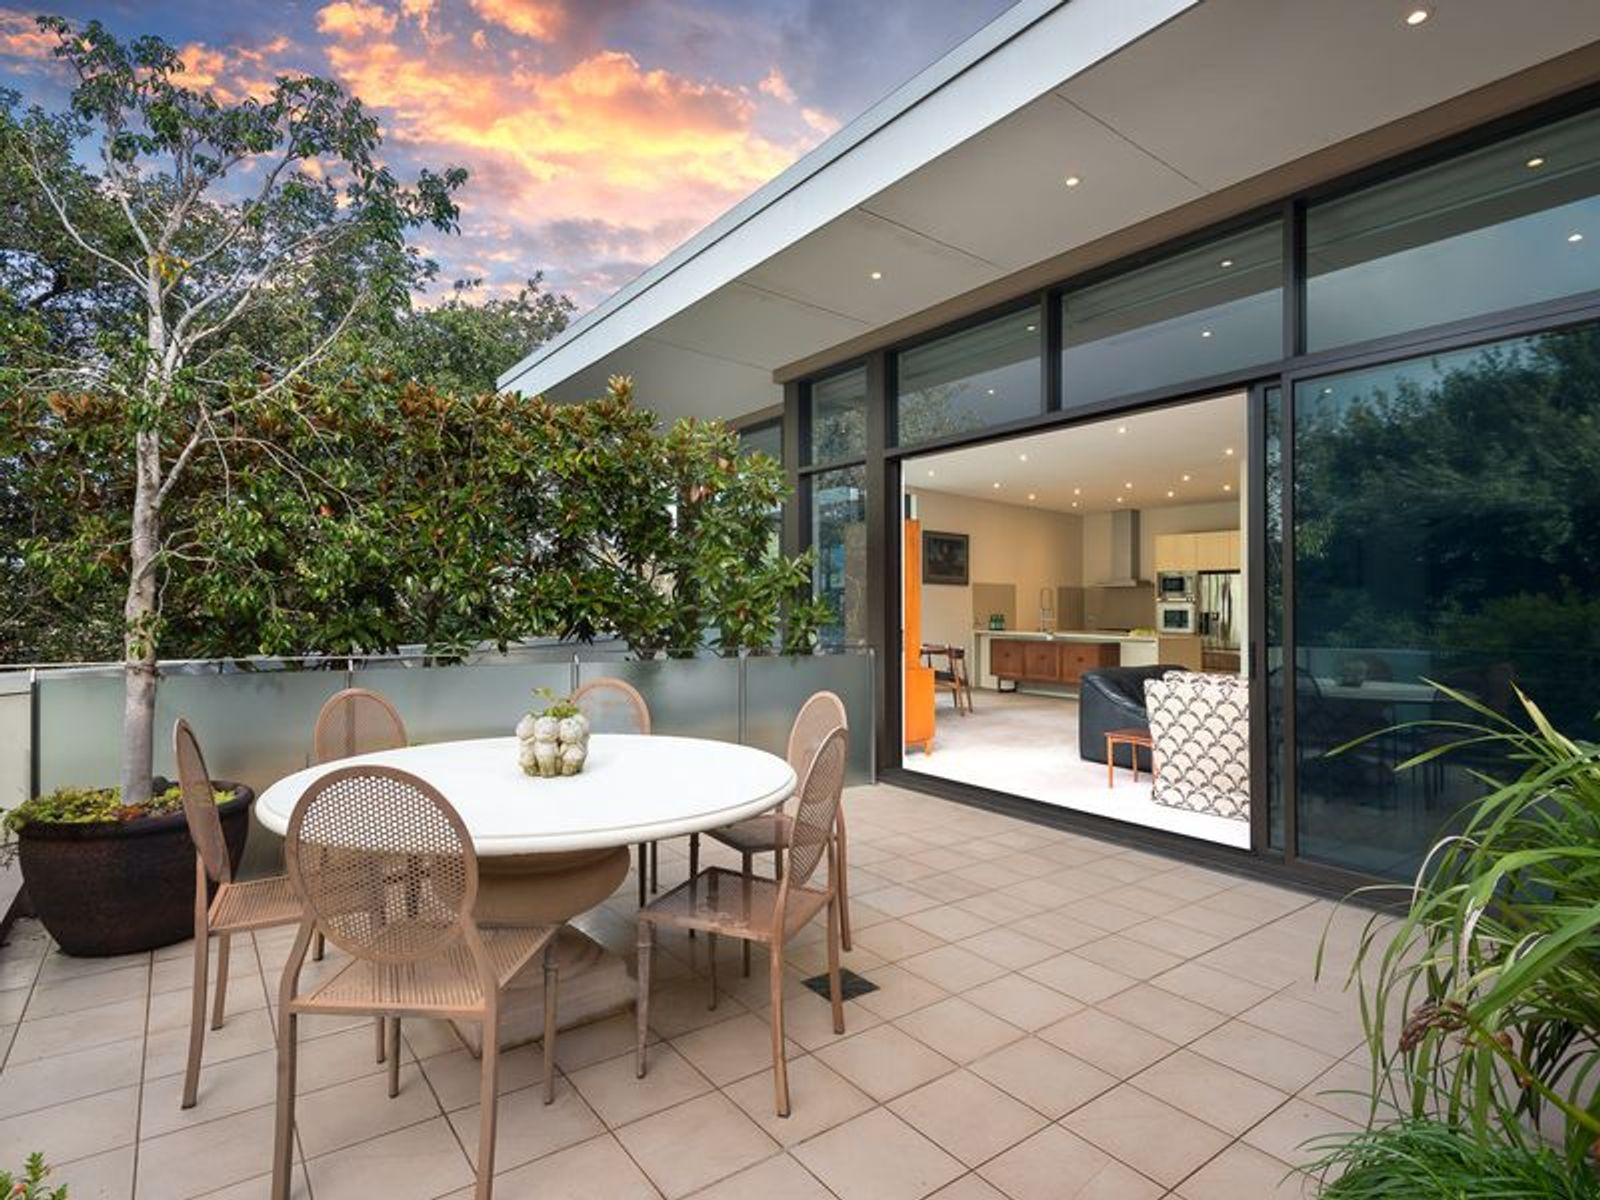 45/1-7 Newhaven Place, St Ives, NSW 2075